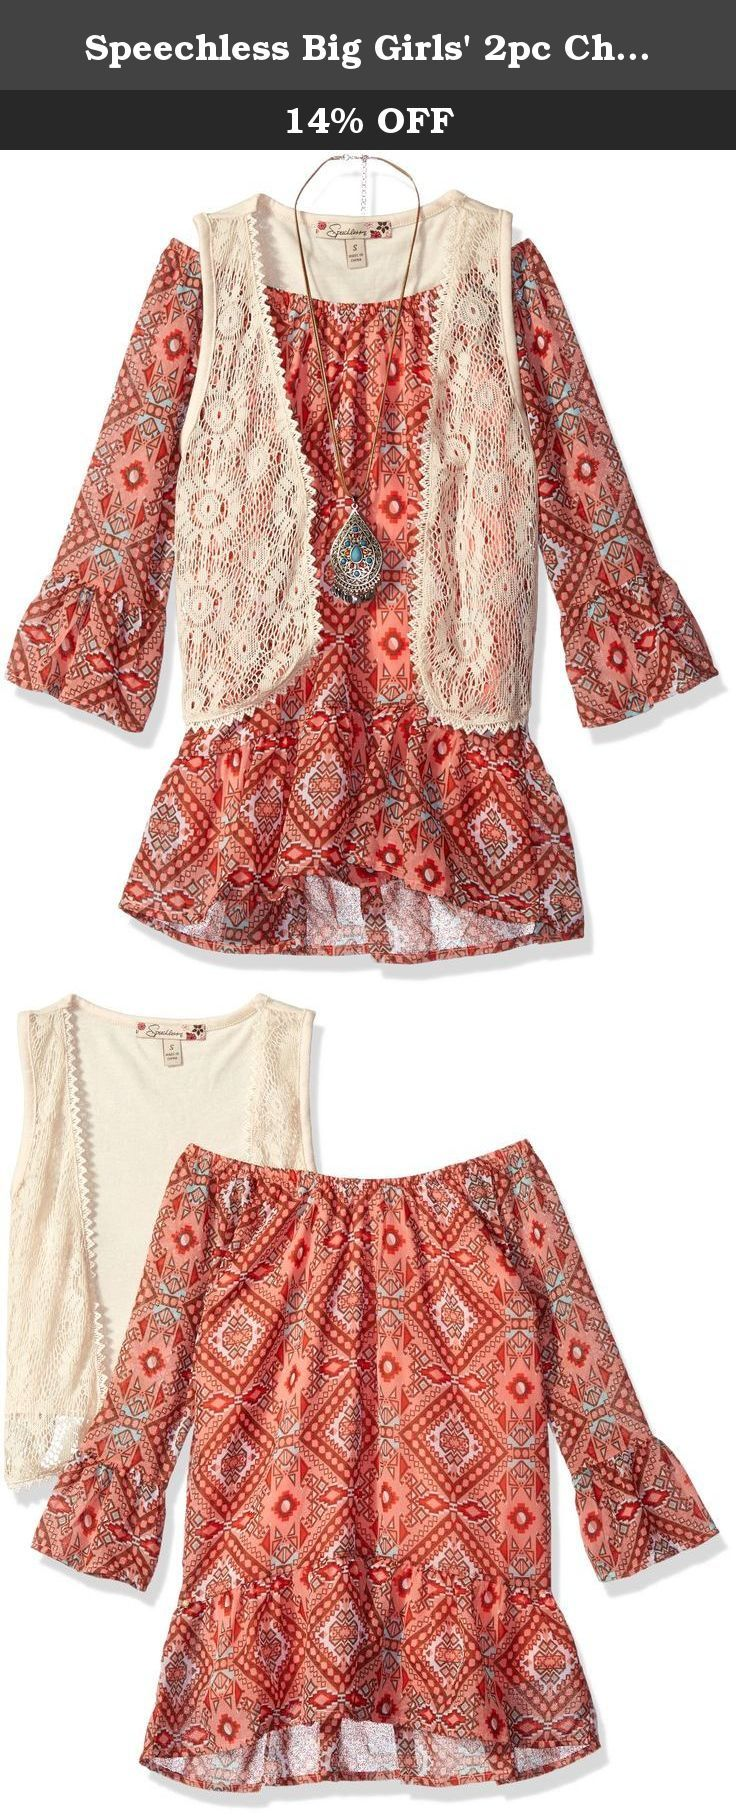 Speechless Big Girls' 2pc Chiffon Bbdoll W/ Vest, Coral/Brown, Medium. Two piece three quarter length bell sleeve peasant top with crochet vest and necklace.